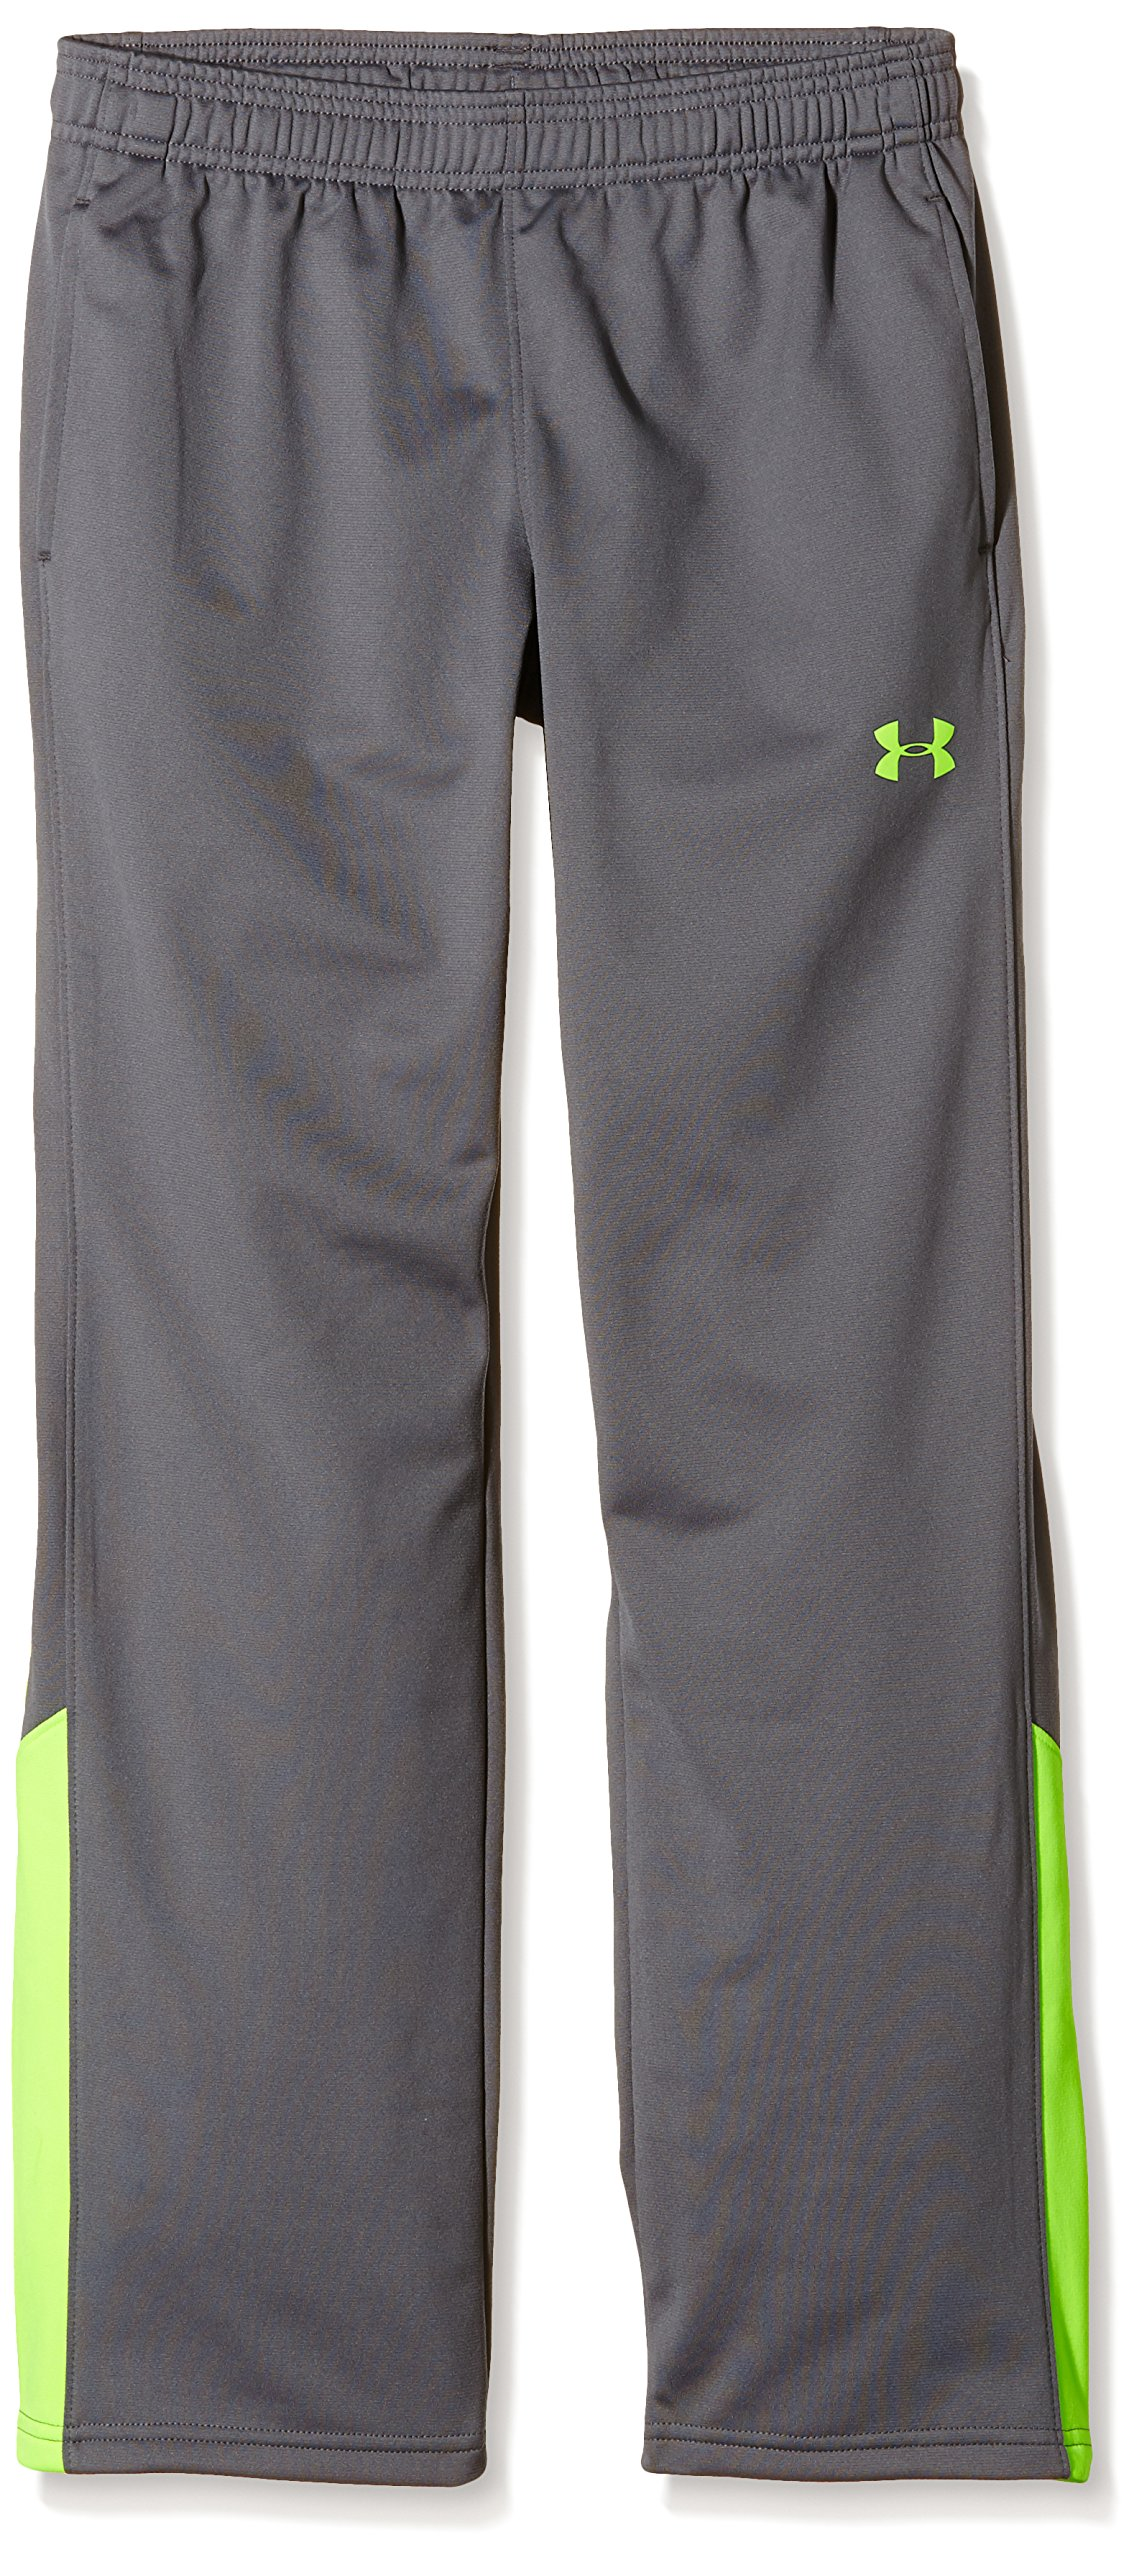 Under Armour Boys' Brawler Pants, Graphite /Fuel Green, Youth Large by Under Armour